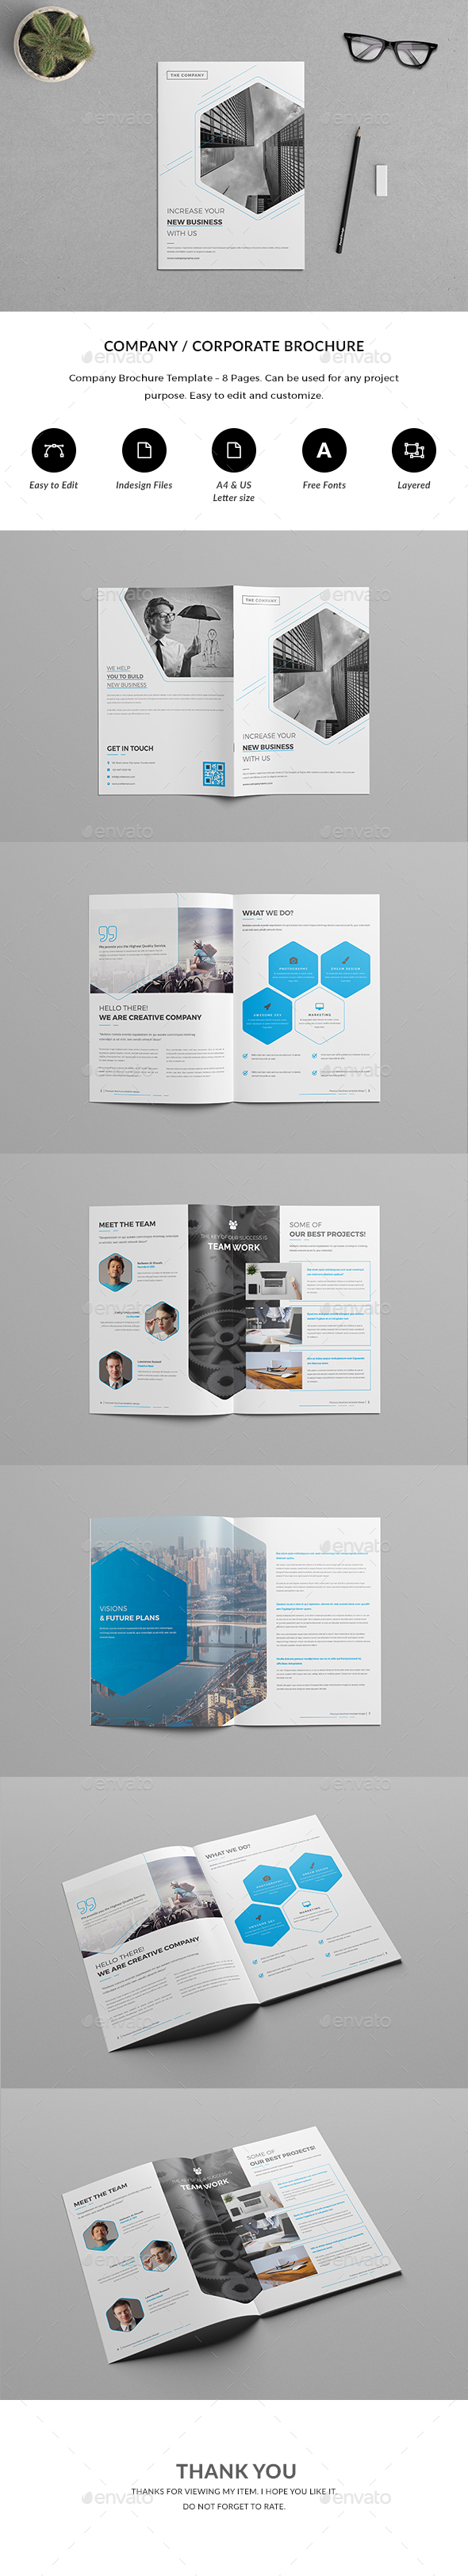 Page CompanyCorporate Brochure By Nashoaib GraphicRiver - 8 page brochure template